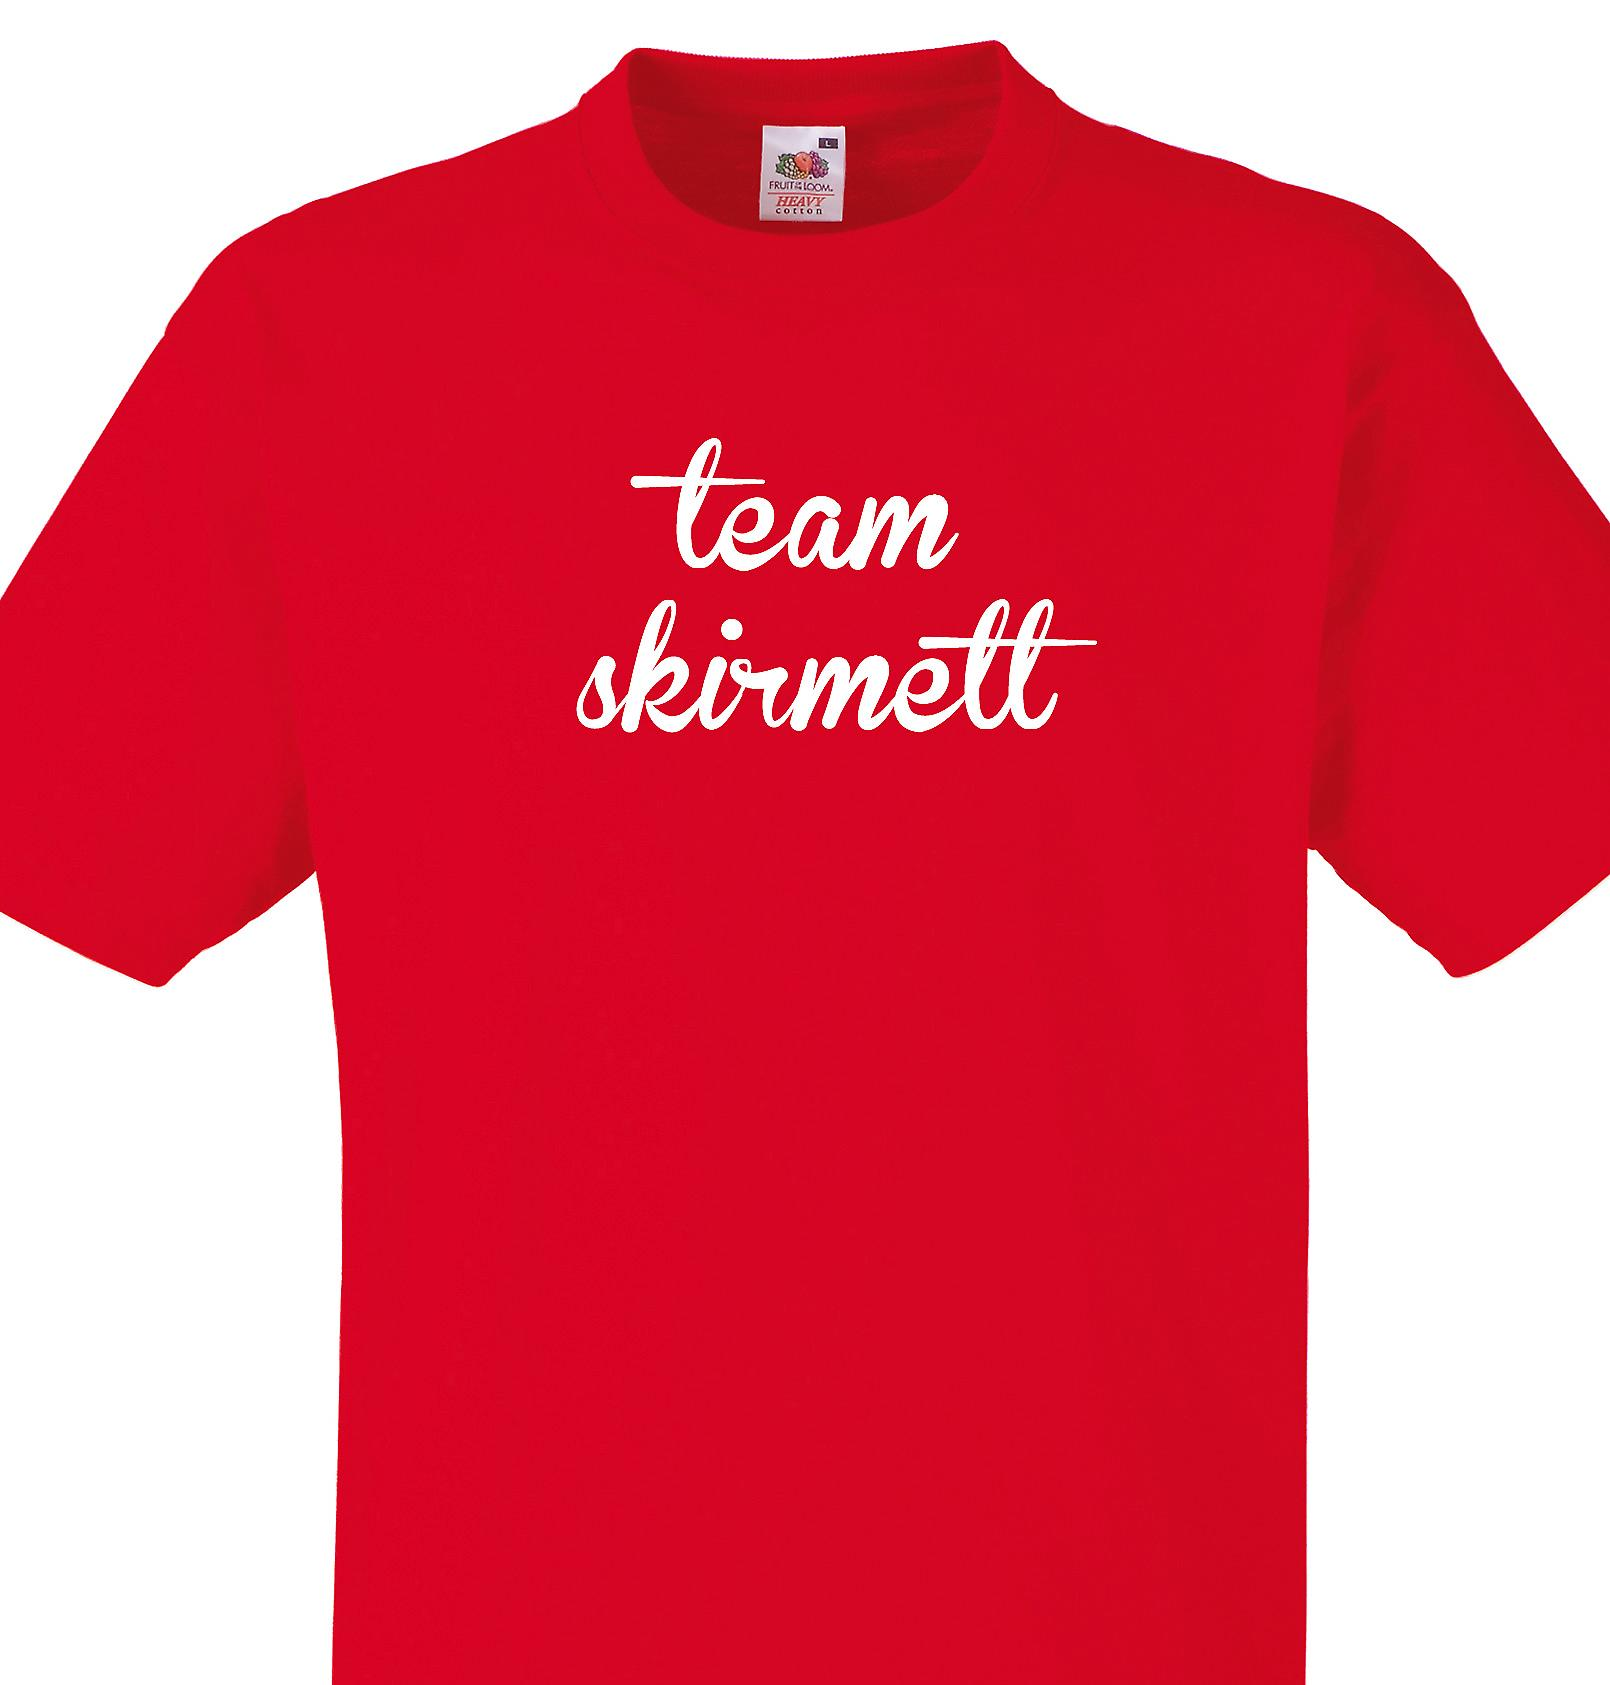 Team Skirmett Red T shirt